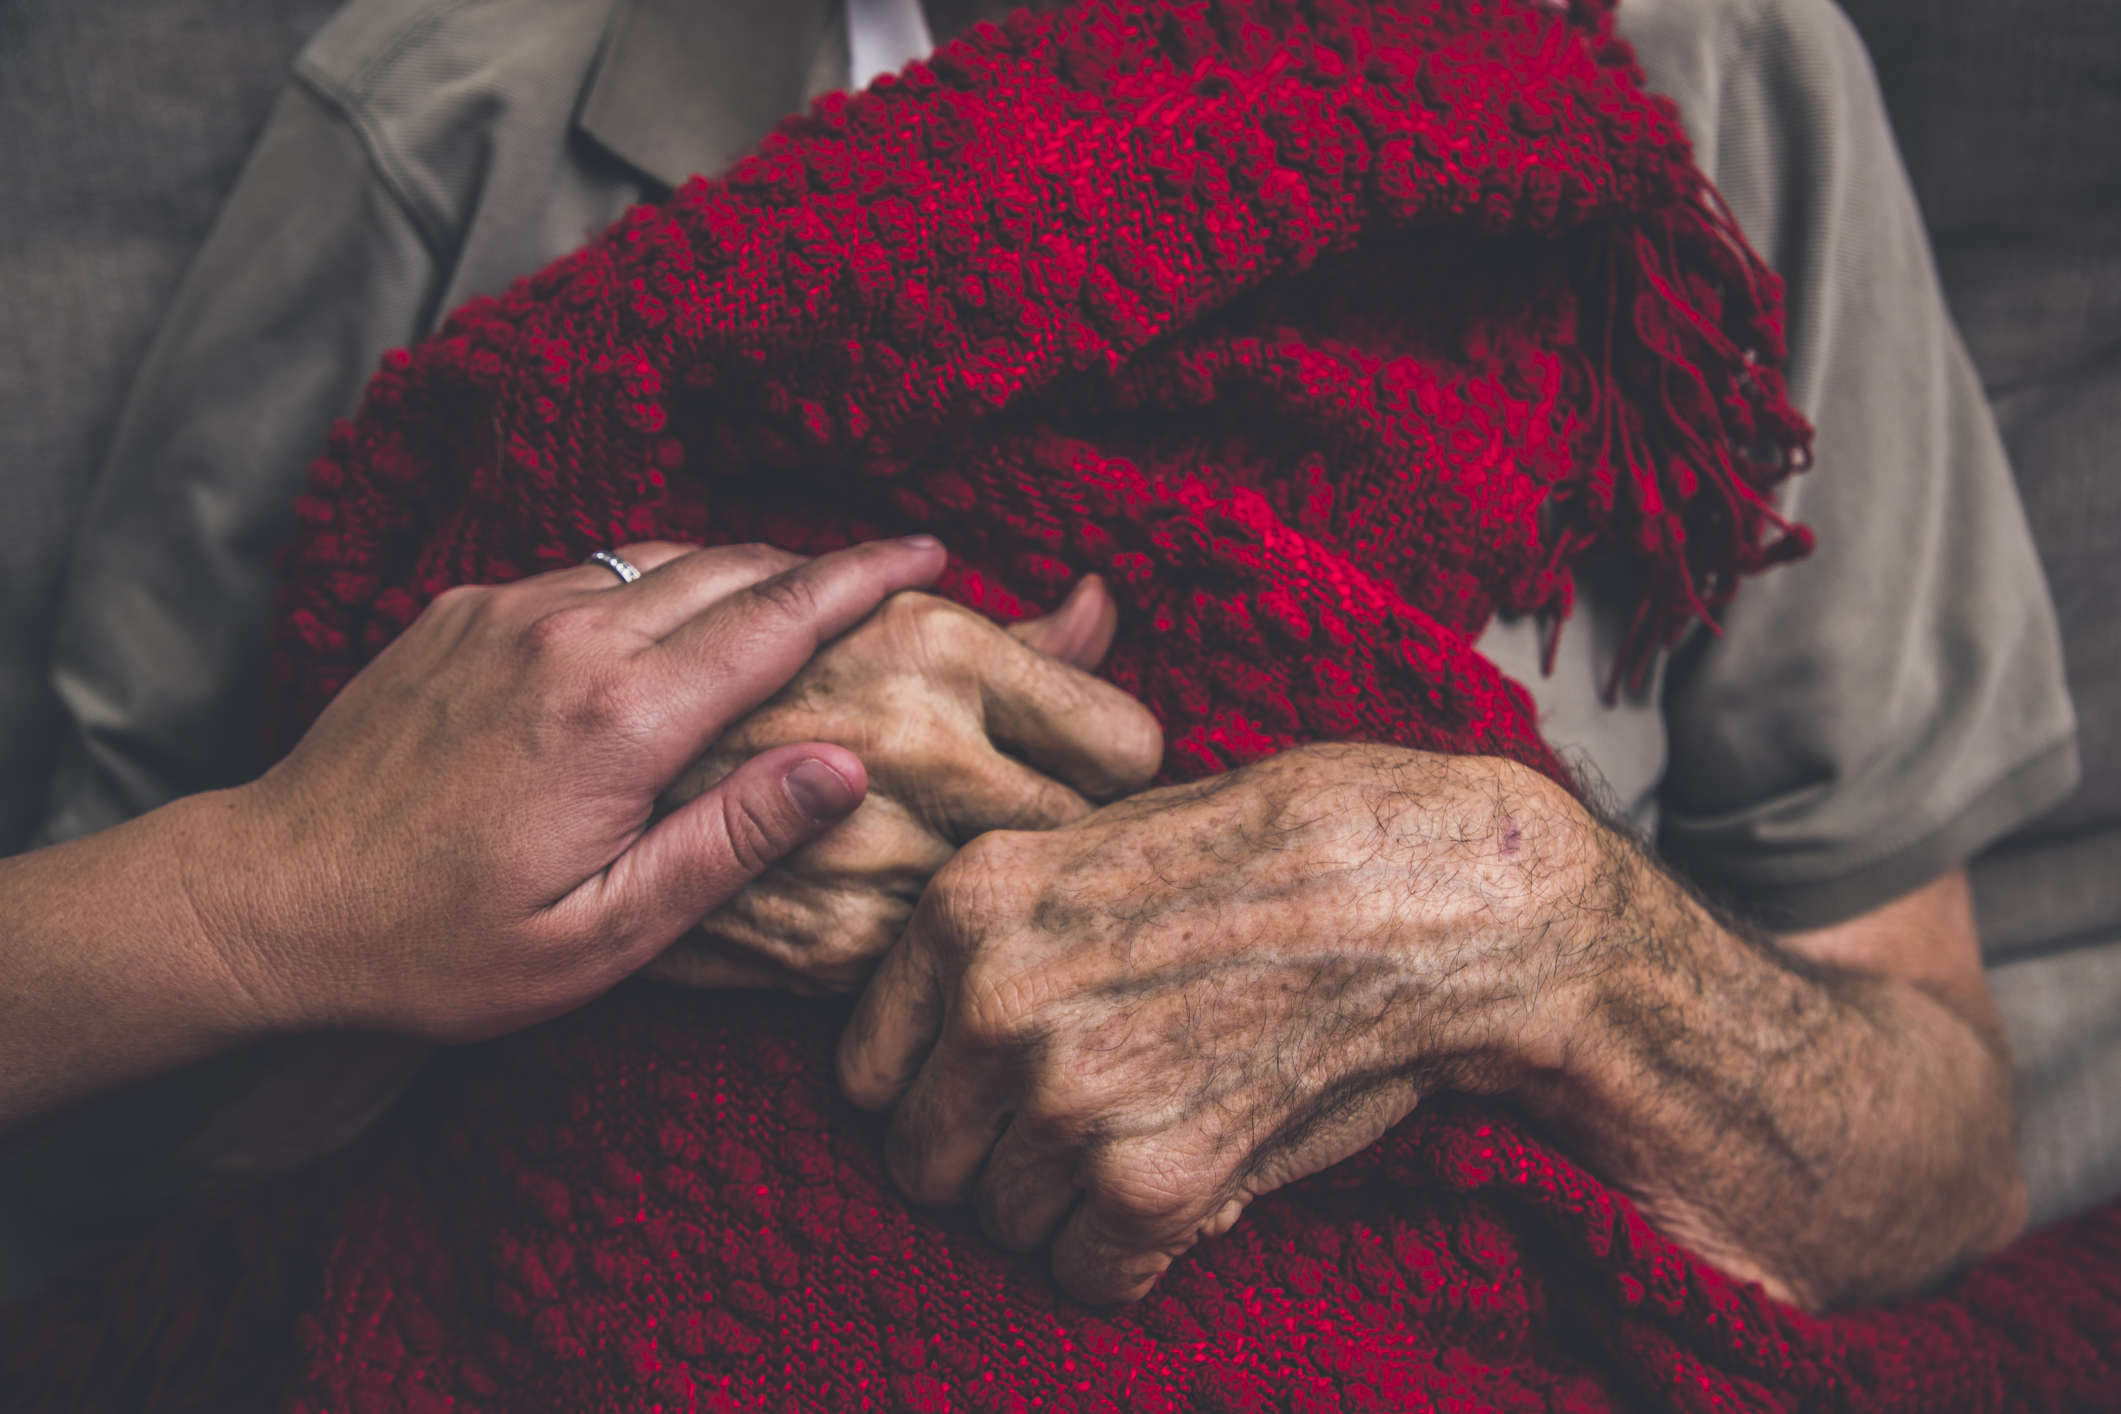 A breakthrough in Parkinson's disease research could see brain changes acting as an early warning sign of the disease [Photo: Getty]